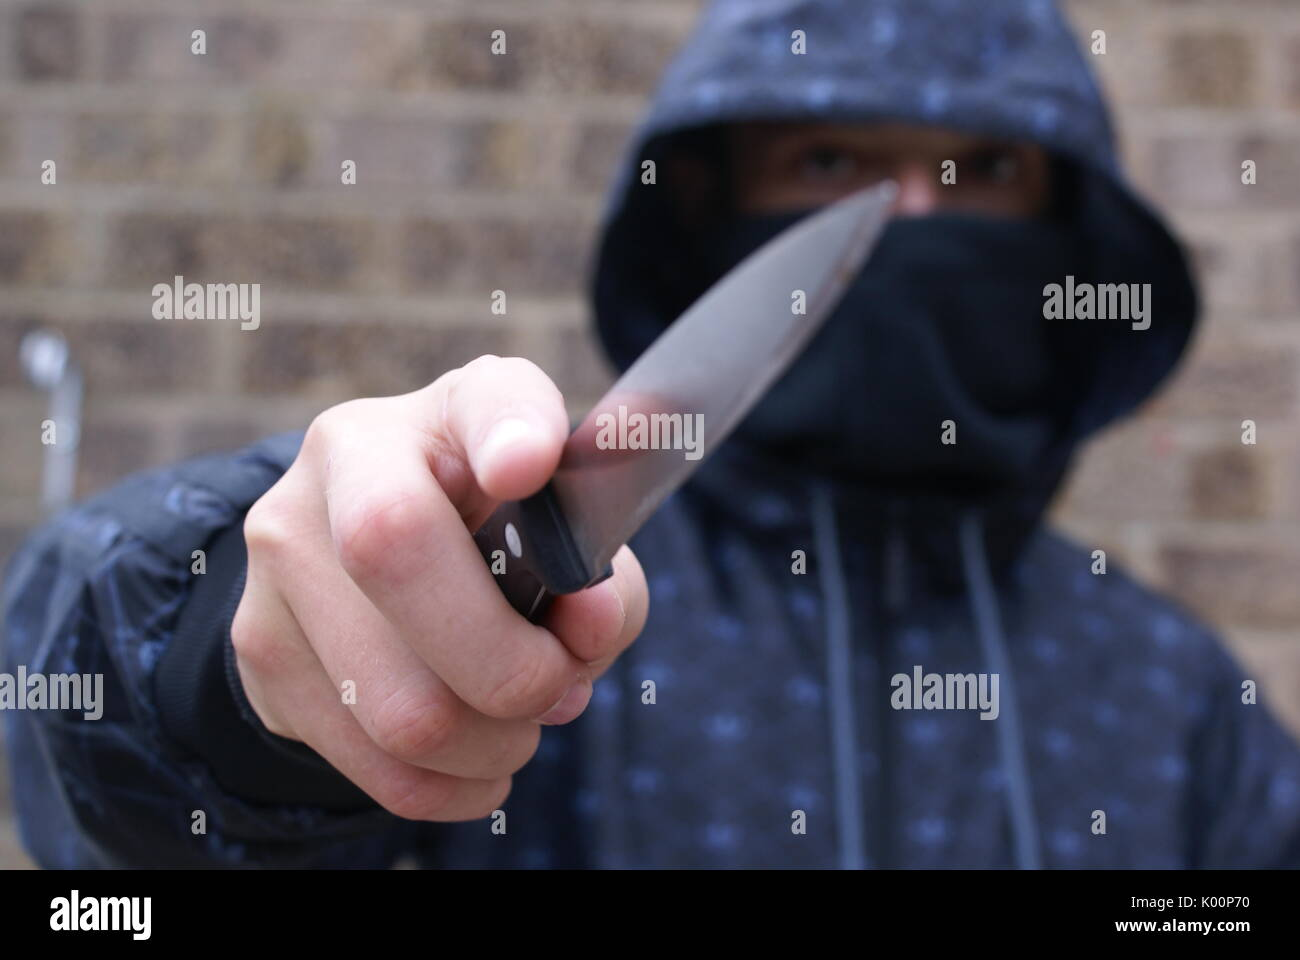 knife crime, teenagers carrying knives, murder - Stock Image